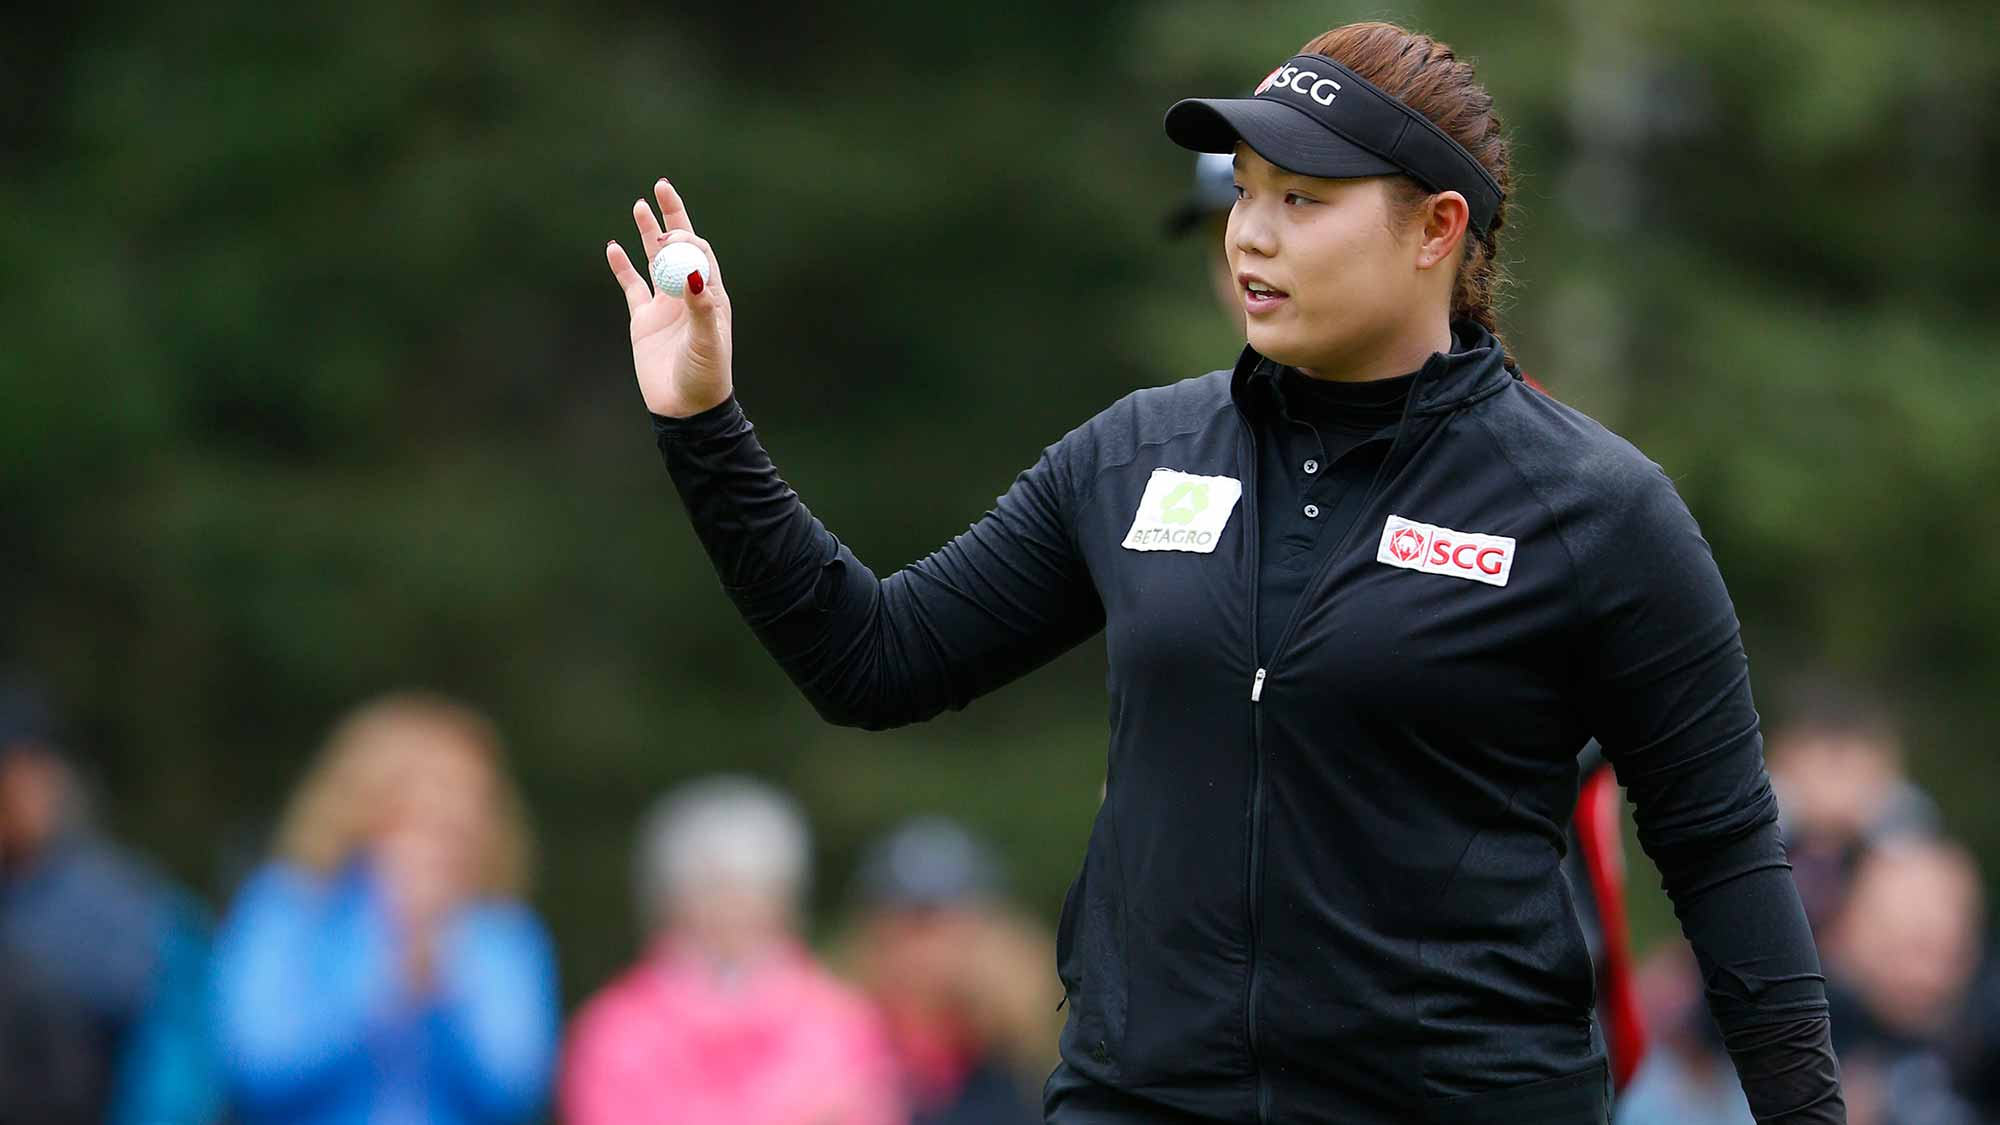 Rookie Sung Hyun Park Wins the CP Women's Open